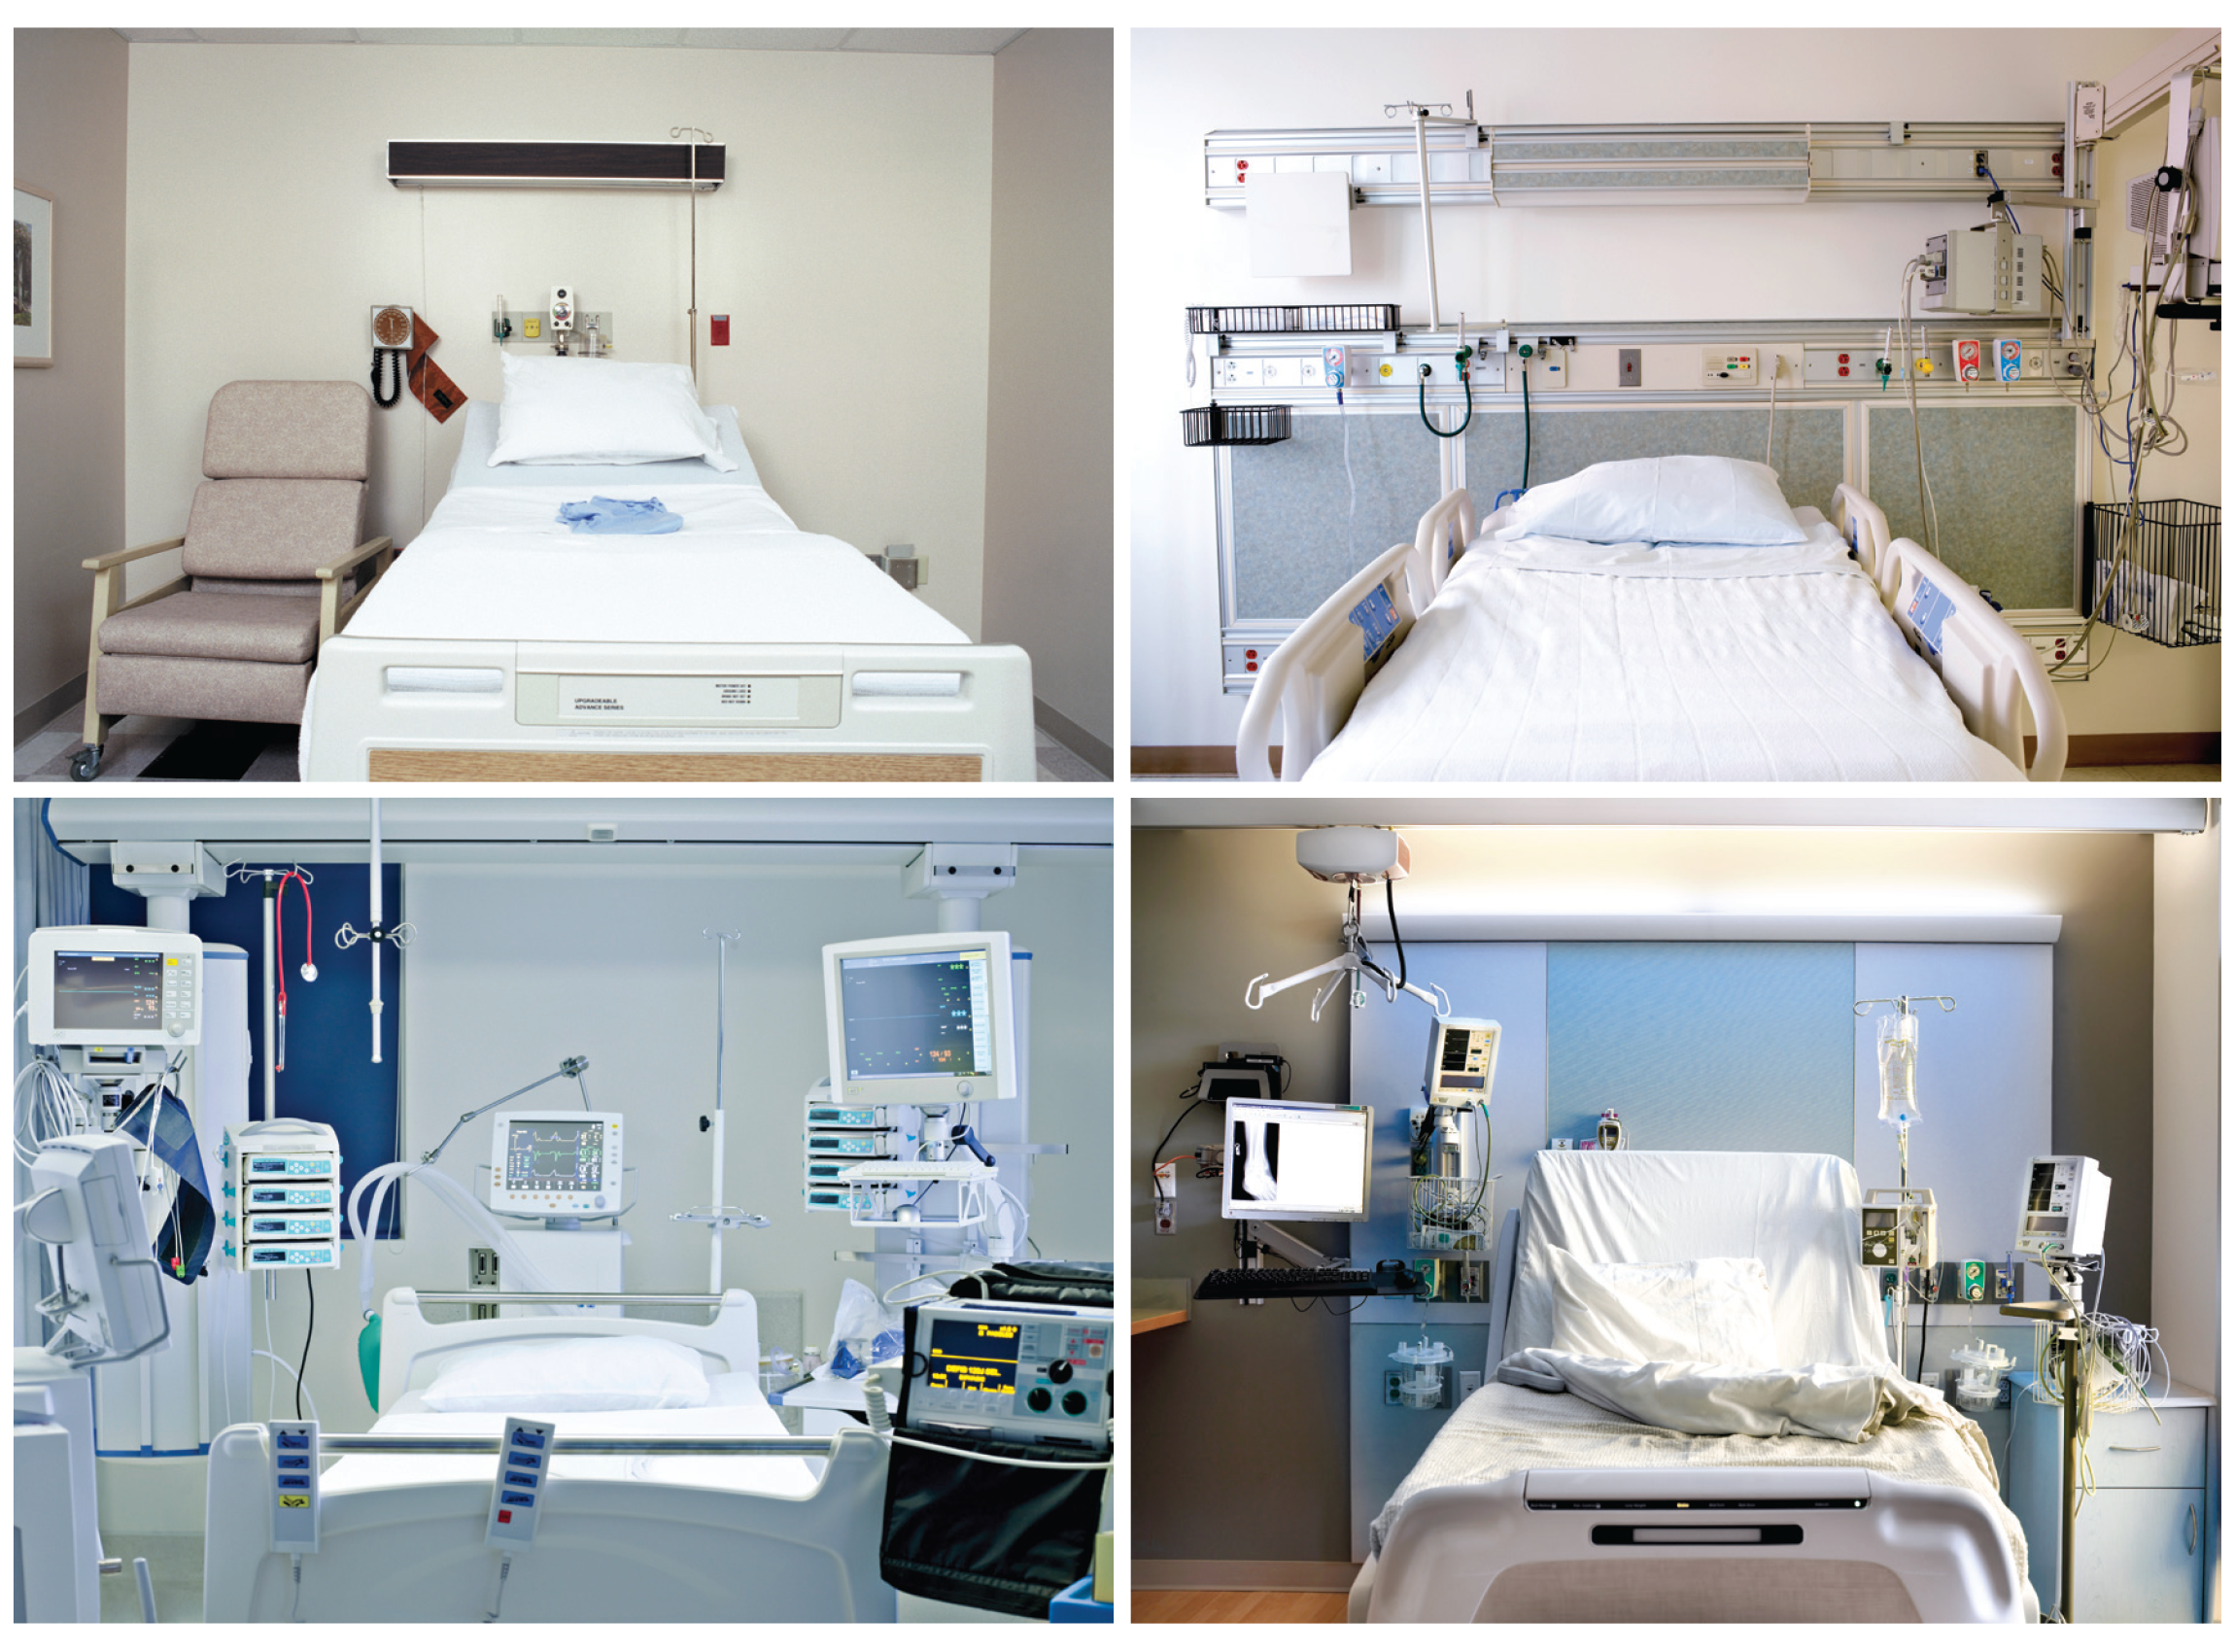 Different versions of the acuity adaptable rooms